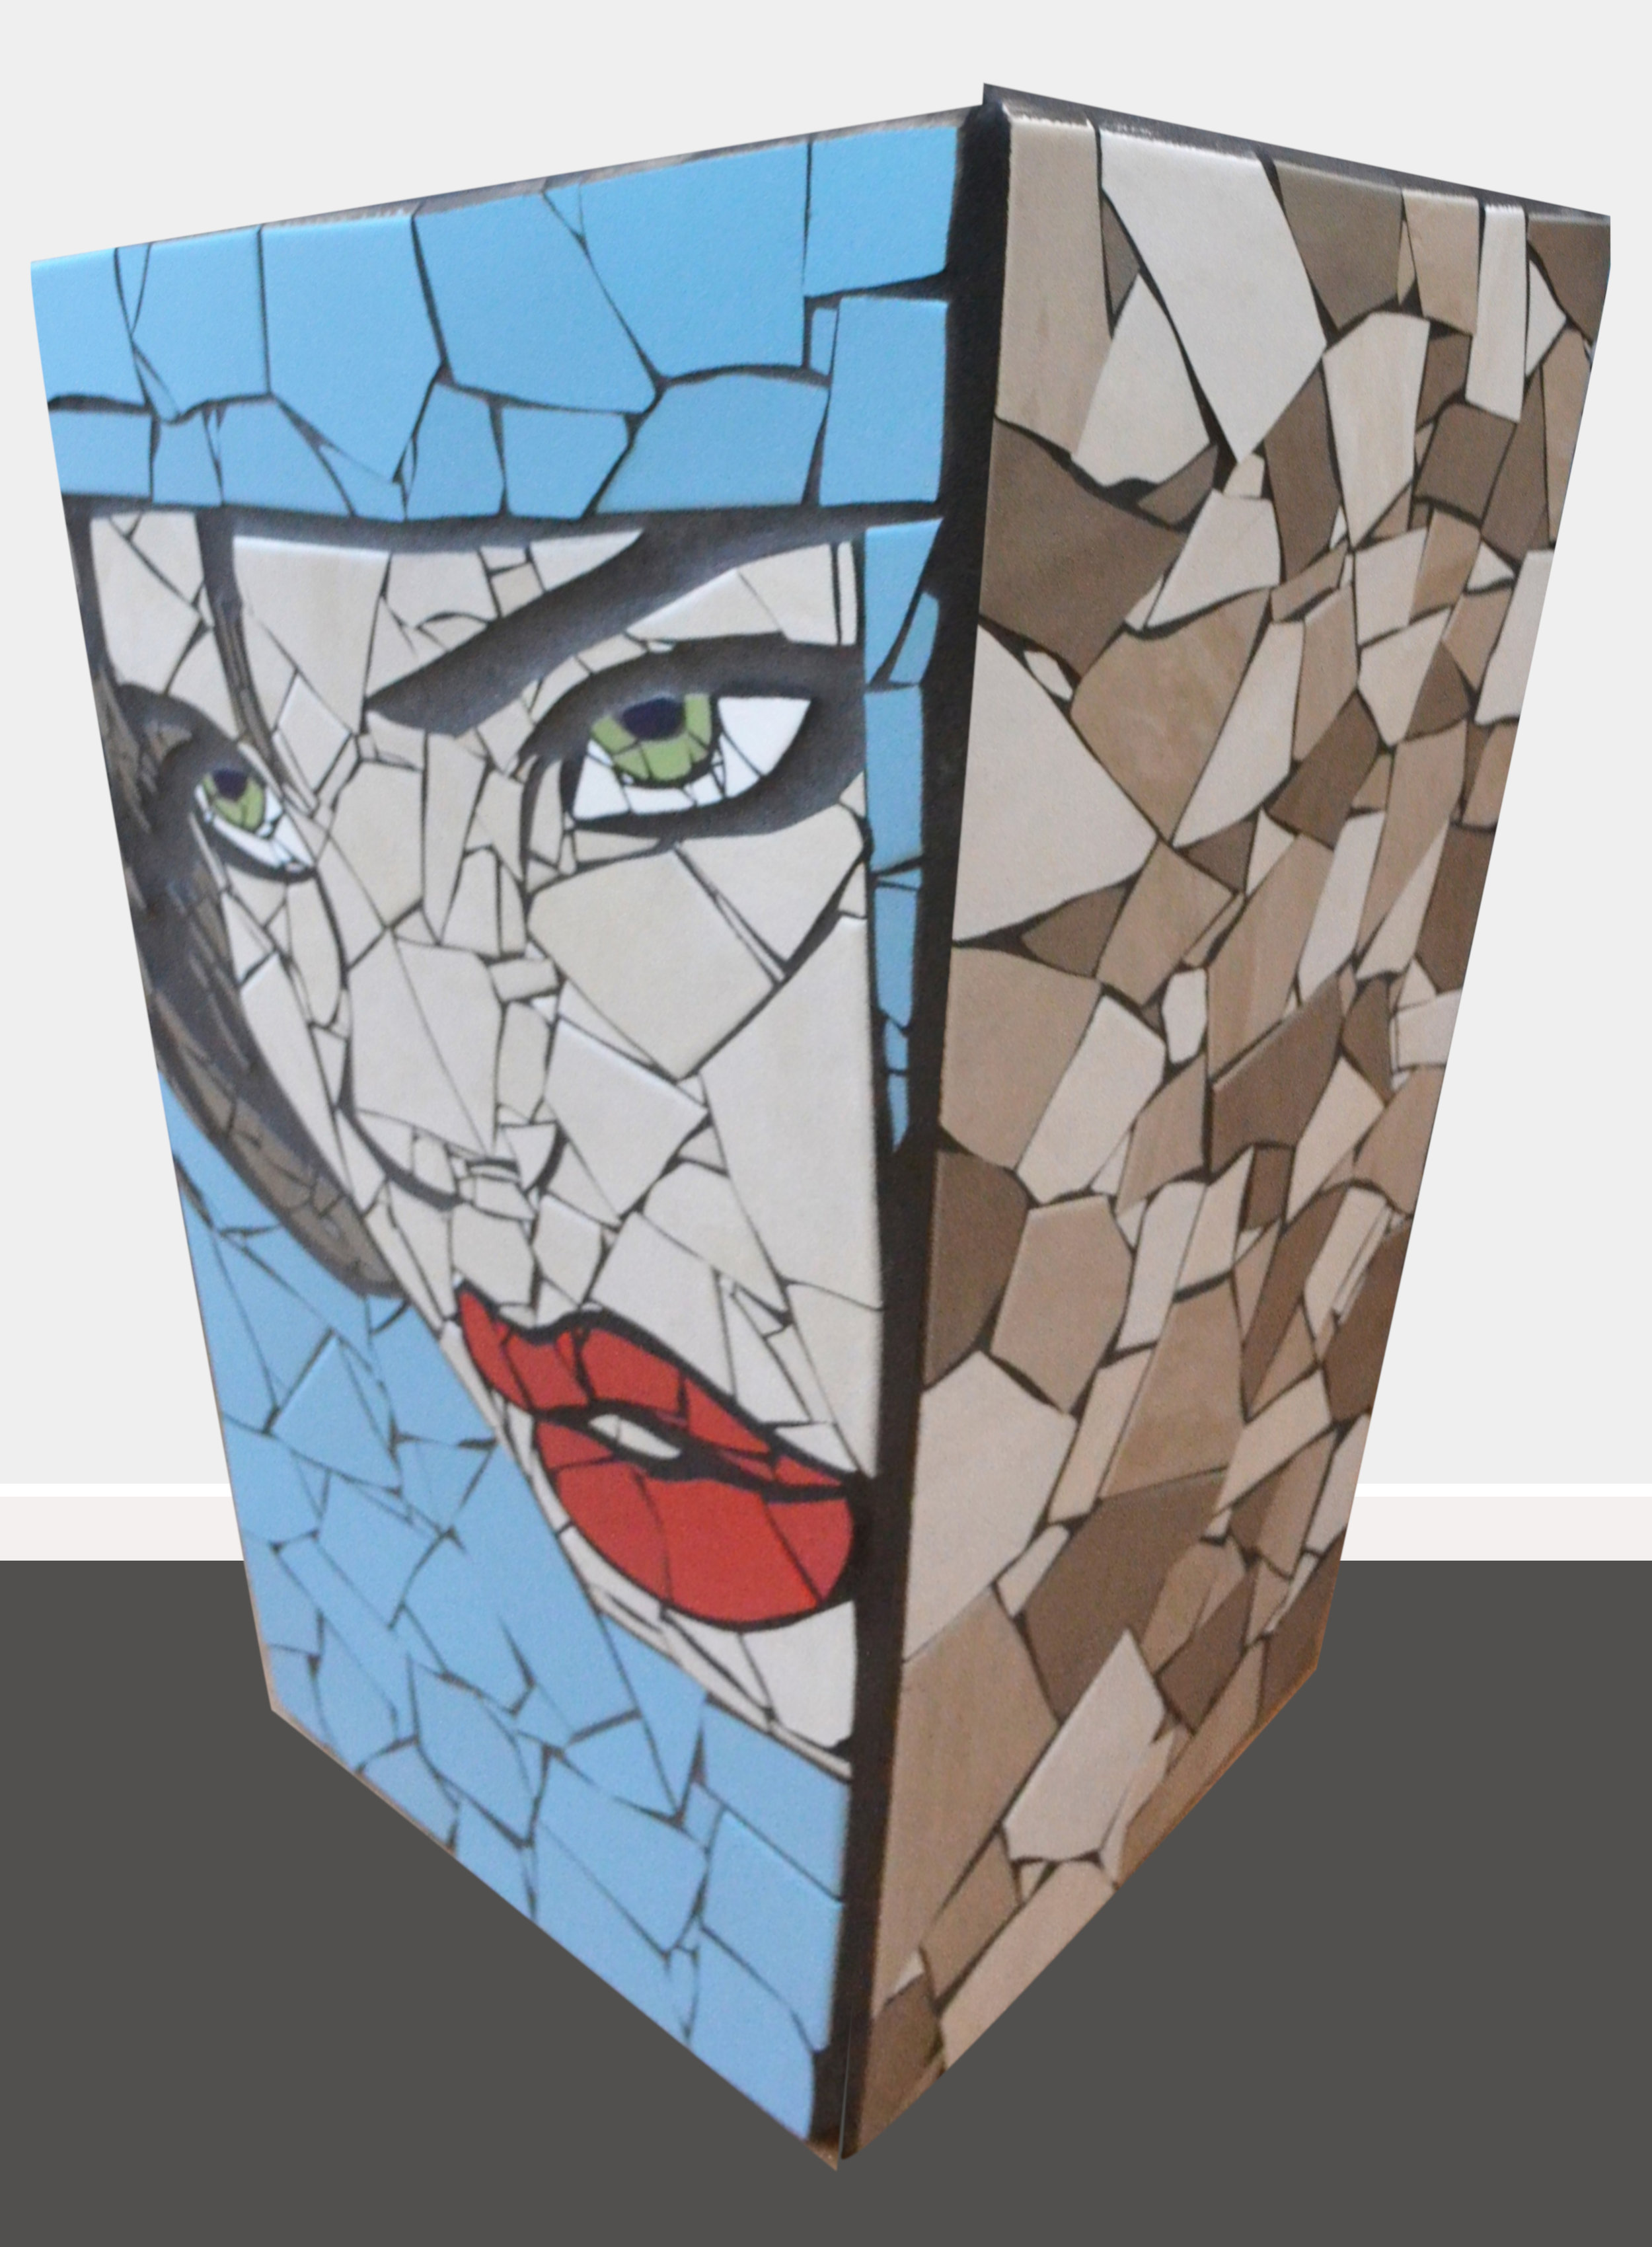 Amelia  Danielle Fernandez, pop art mosaic planter, indoor/outdoor (drainage hole at bottom), 630mm x 430mm. Amelia is the detective in the movie 'The Bone Collector', played by Angelina Jolie.   $2,750.00